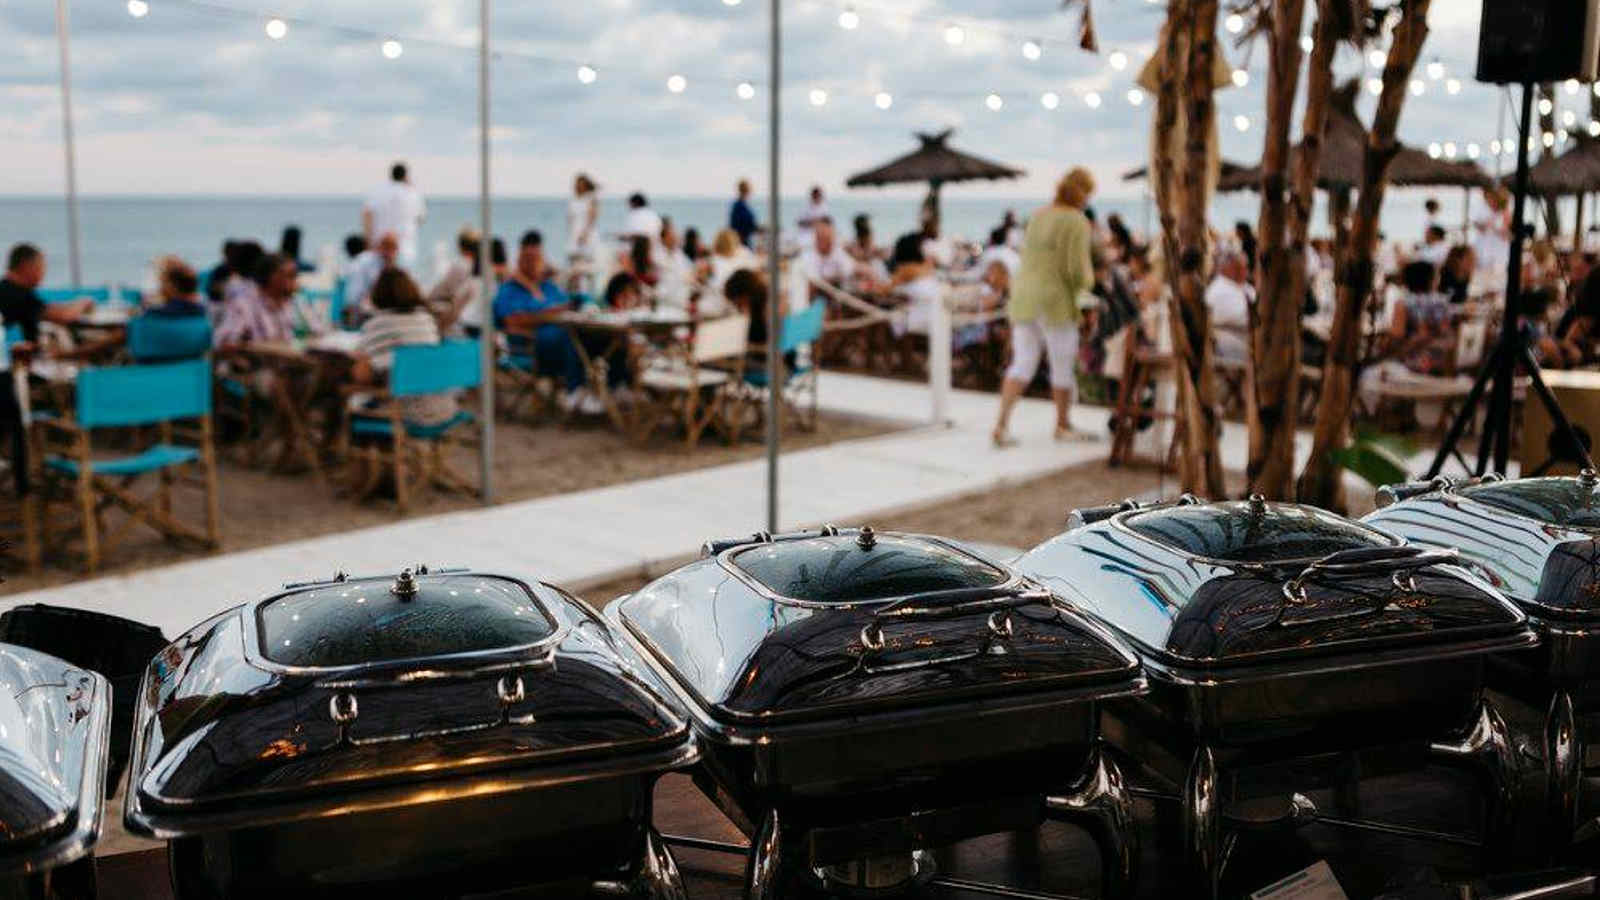 Summer parties and dinners at the Beach Club Le Méridien Ra